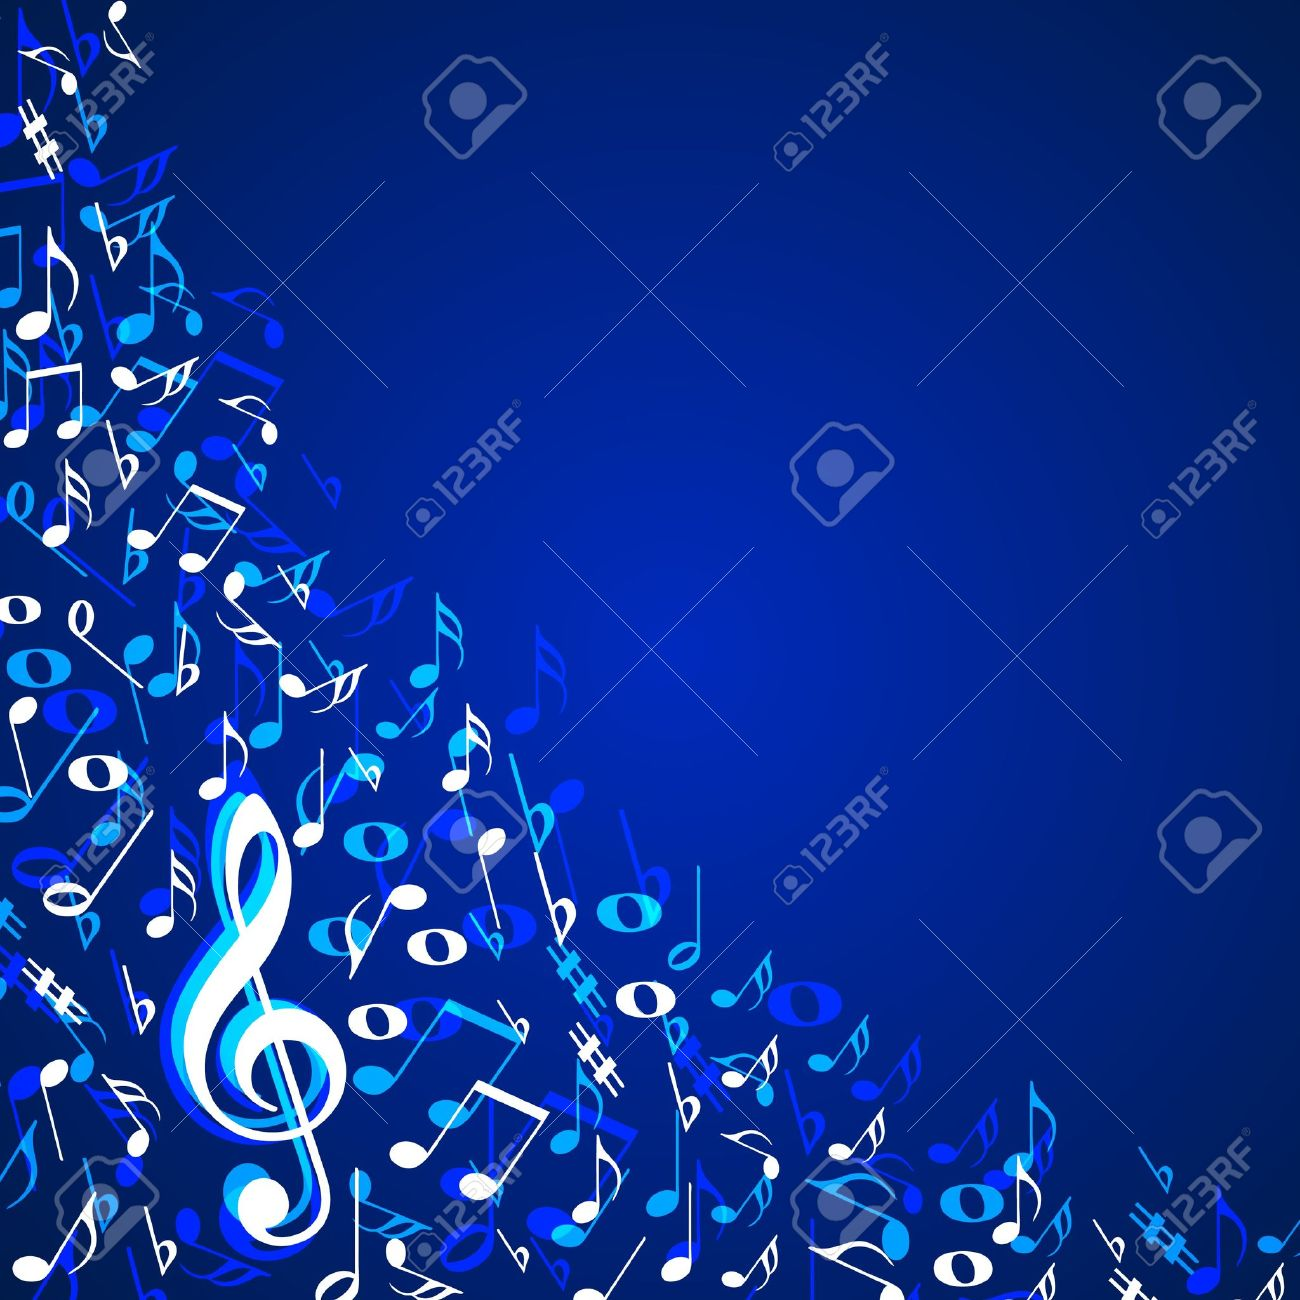 Music notes background royalty free cliparts vectors and stock music notes background voltagebd Image collections